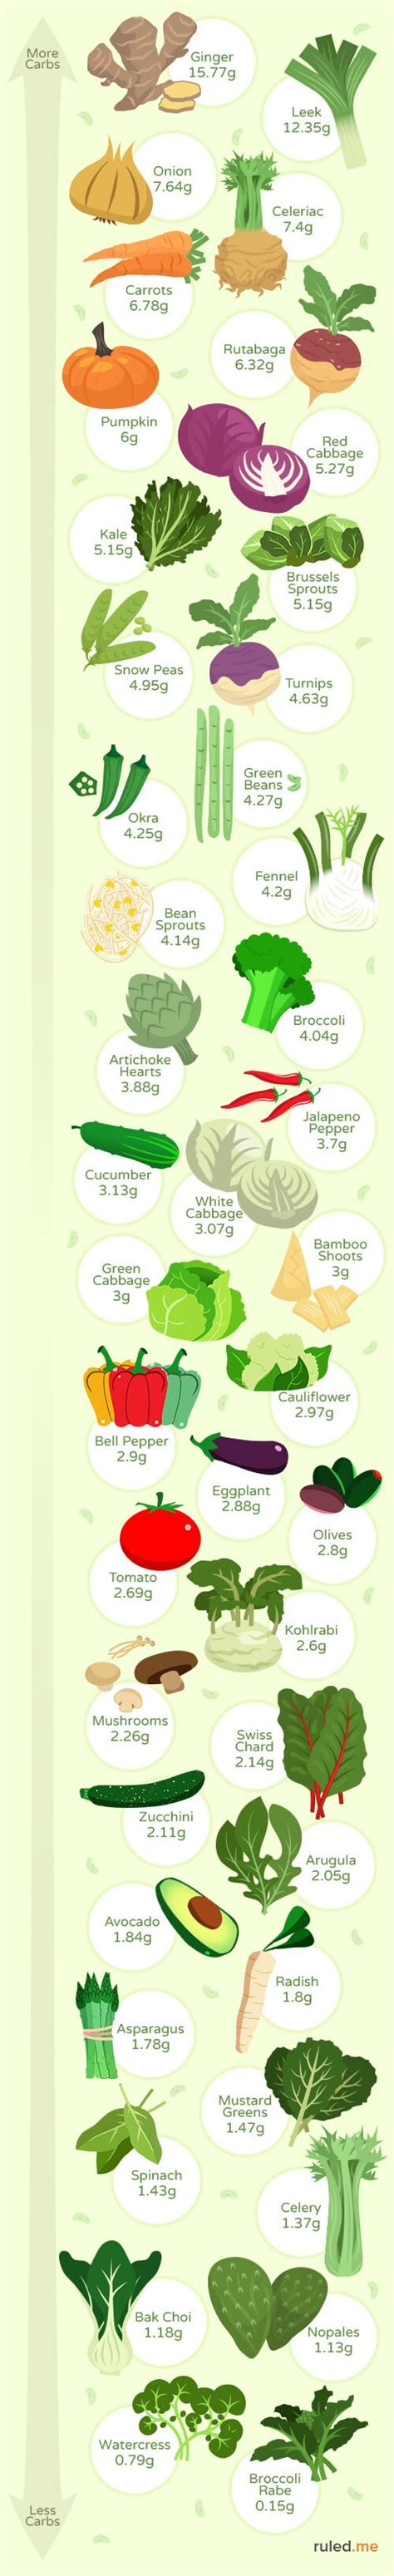 vegetables keto friendly the best low carb vegetables for keto ruled me